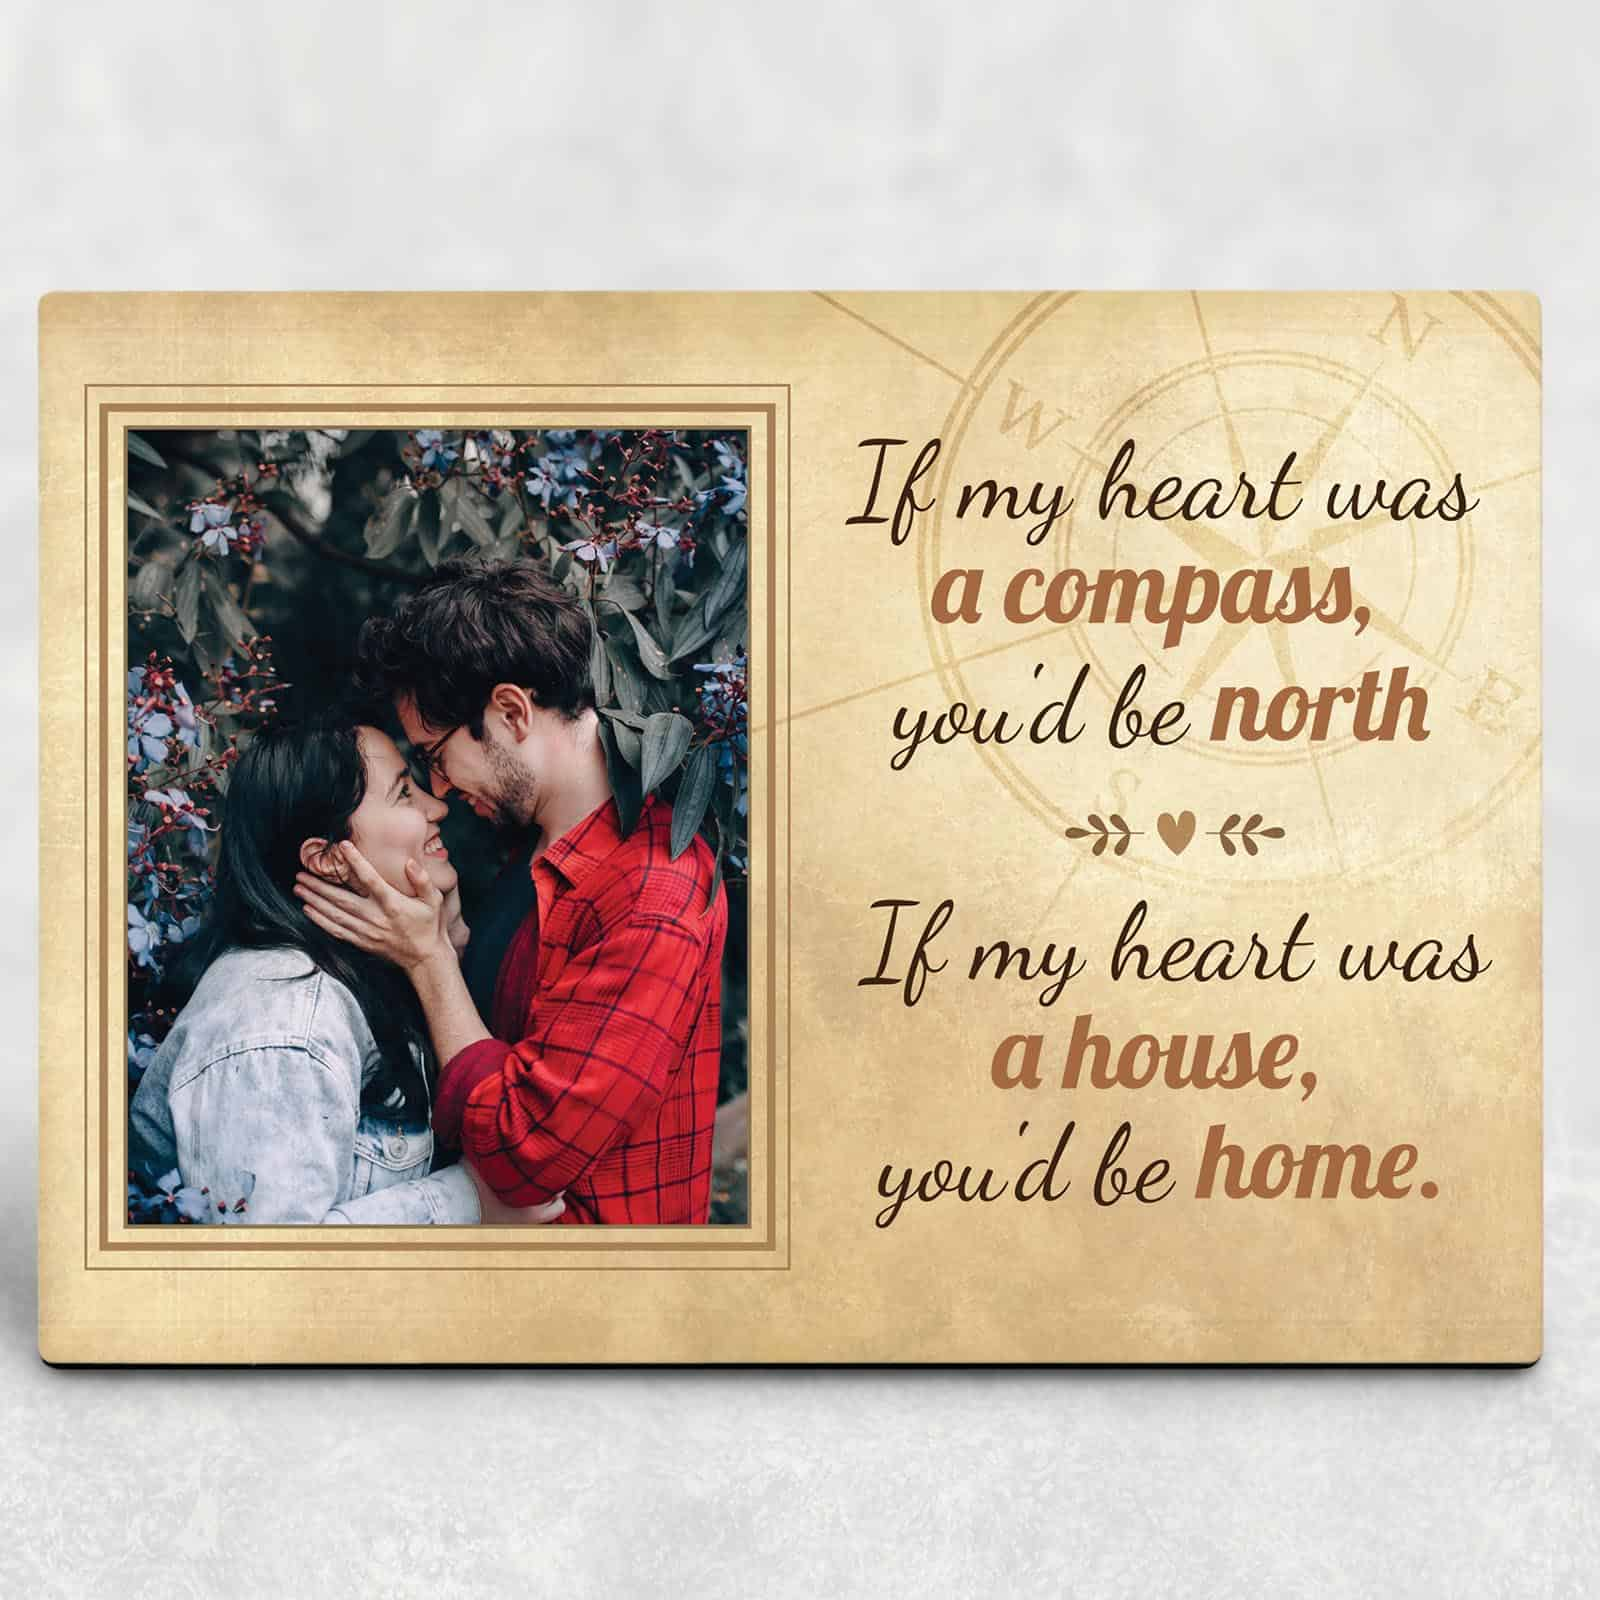 If My Heart Was a Compass You'd Be North Photo Plaque on a desk